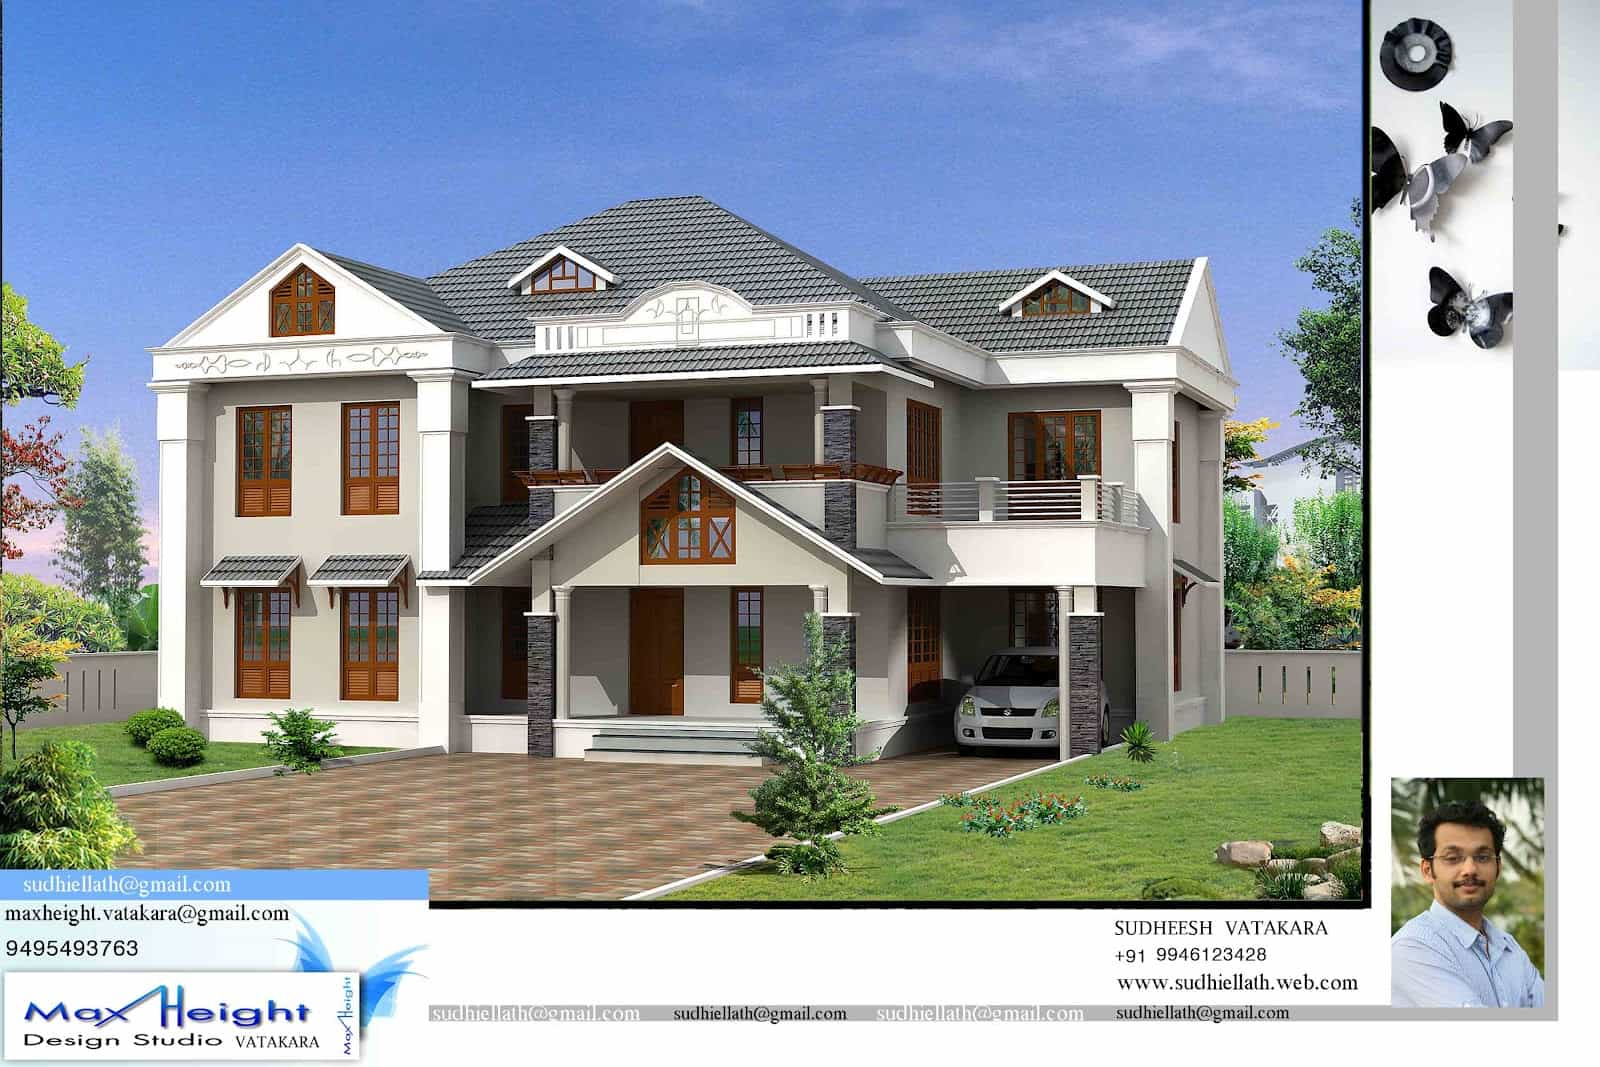 New model houses in kerala photos images for Kerala house models and plans